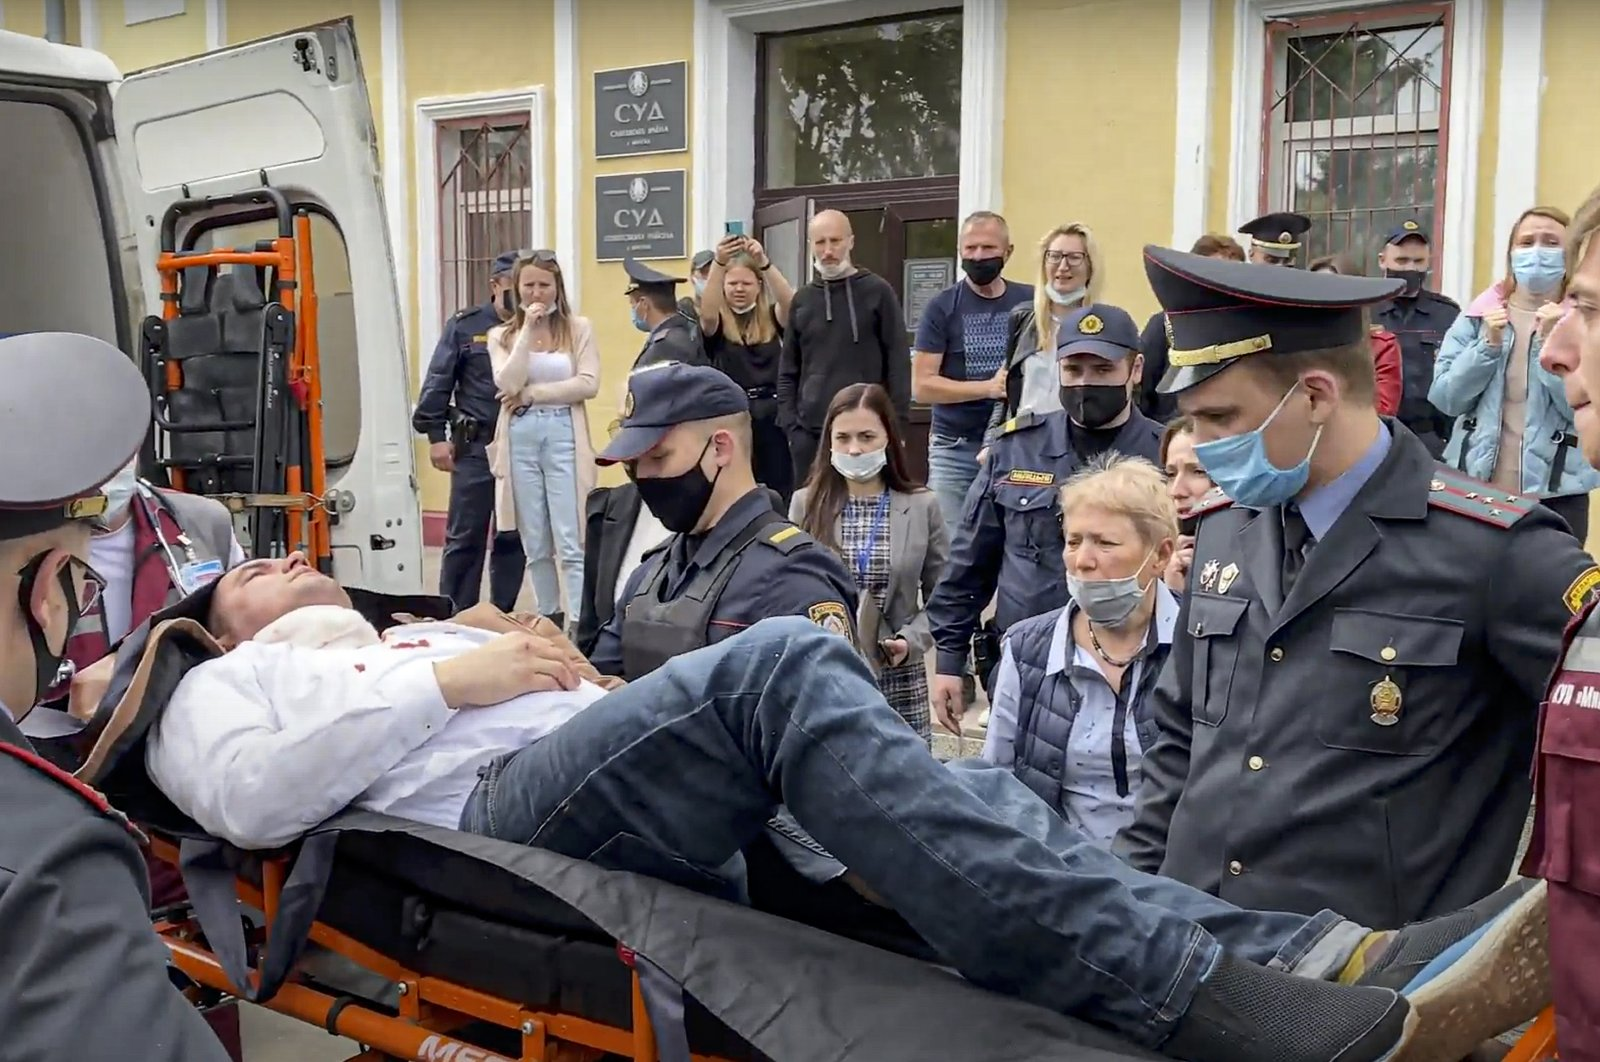 Police officers and paramedics carry Stsiapan Latypau, a Belarusian activist who attempted to kill himself during a court hearing to protest political repression, into an ambulance in Minsk, Belarus, June 1, 2021. (Radio Free Europe/Radio Liberty via AP)